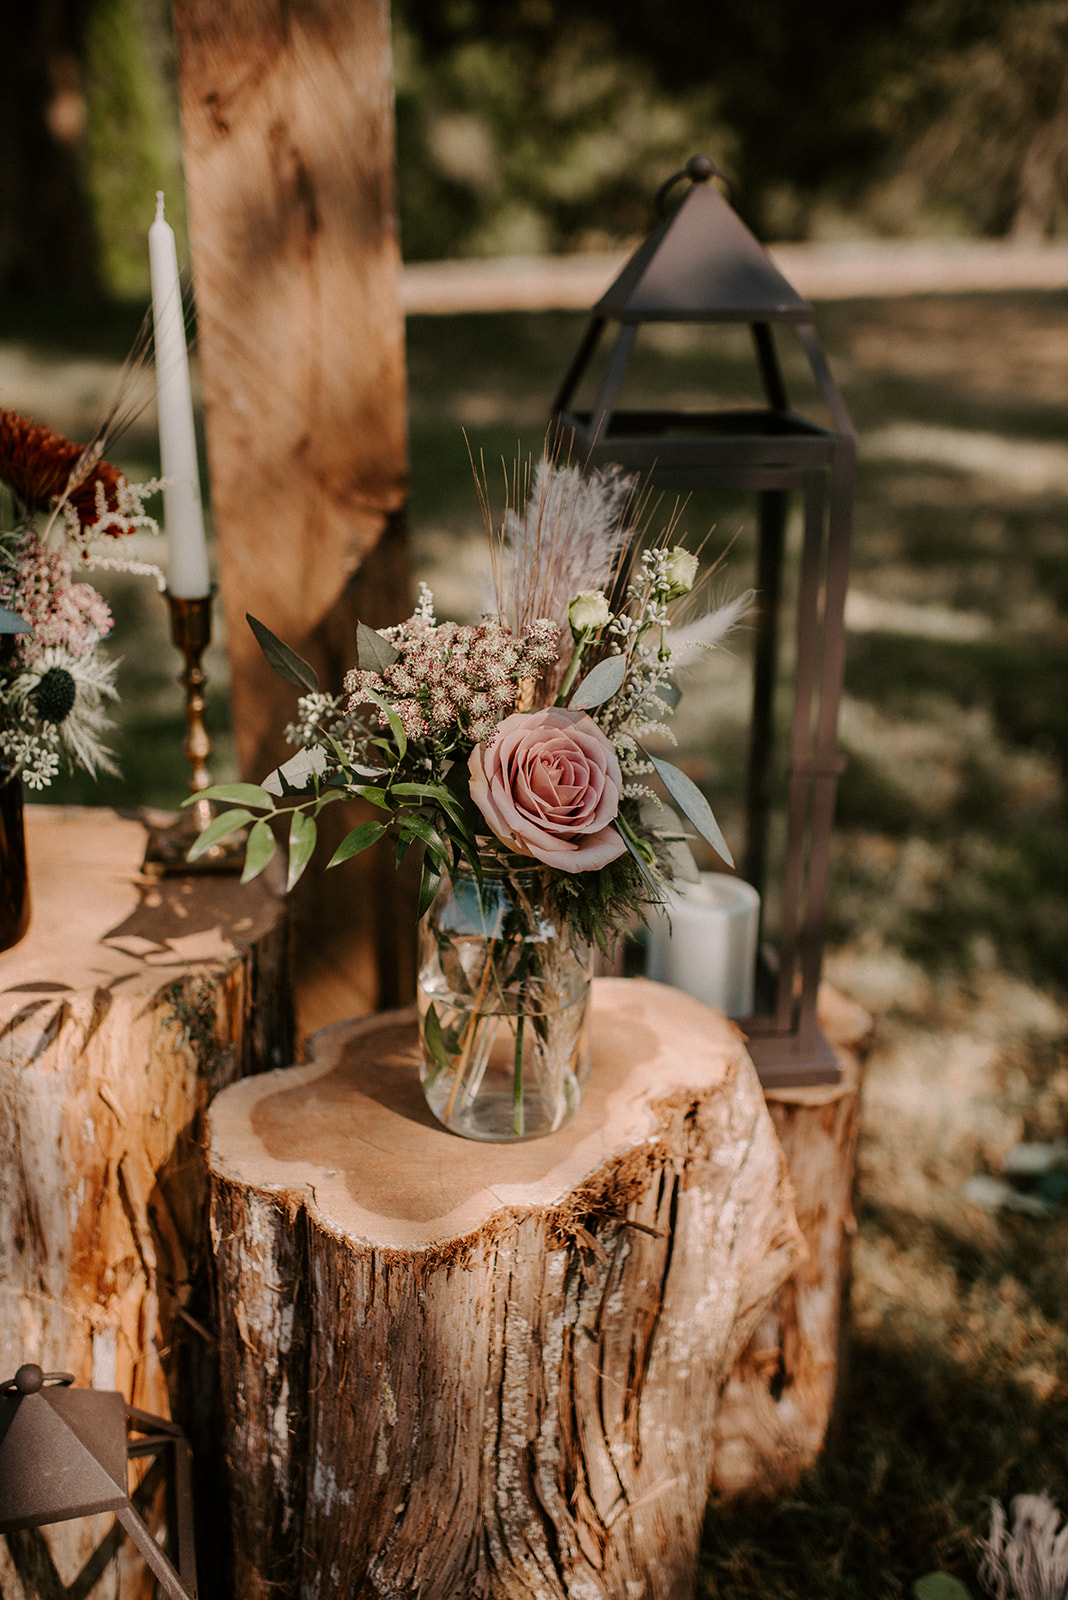 Rustic boho wedding decor for Cedermont Farm wedding featured on Nashville Bride Guide